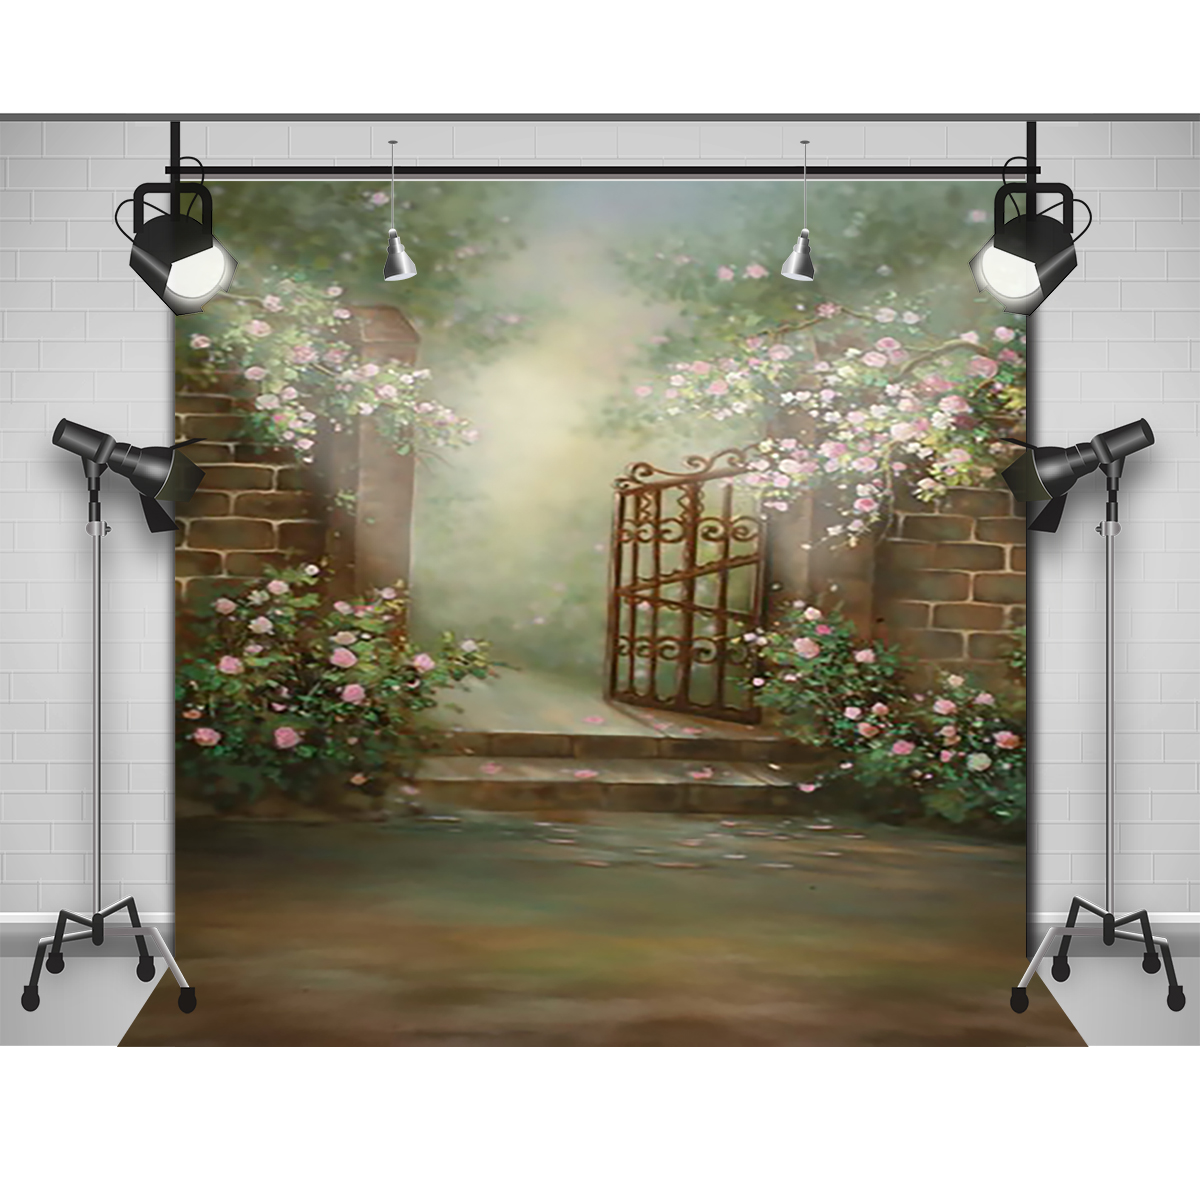 Flower Garden Gates Backgrounds Vinyl cloth High quality Computer printed custom backdrop